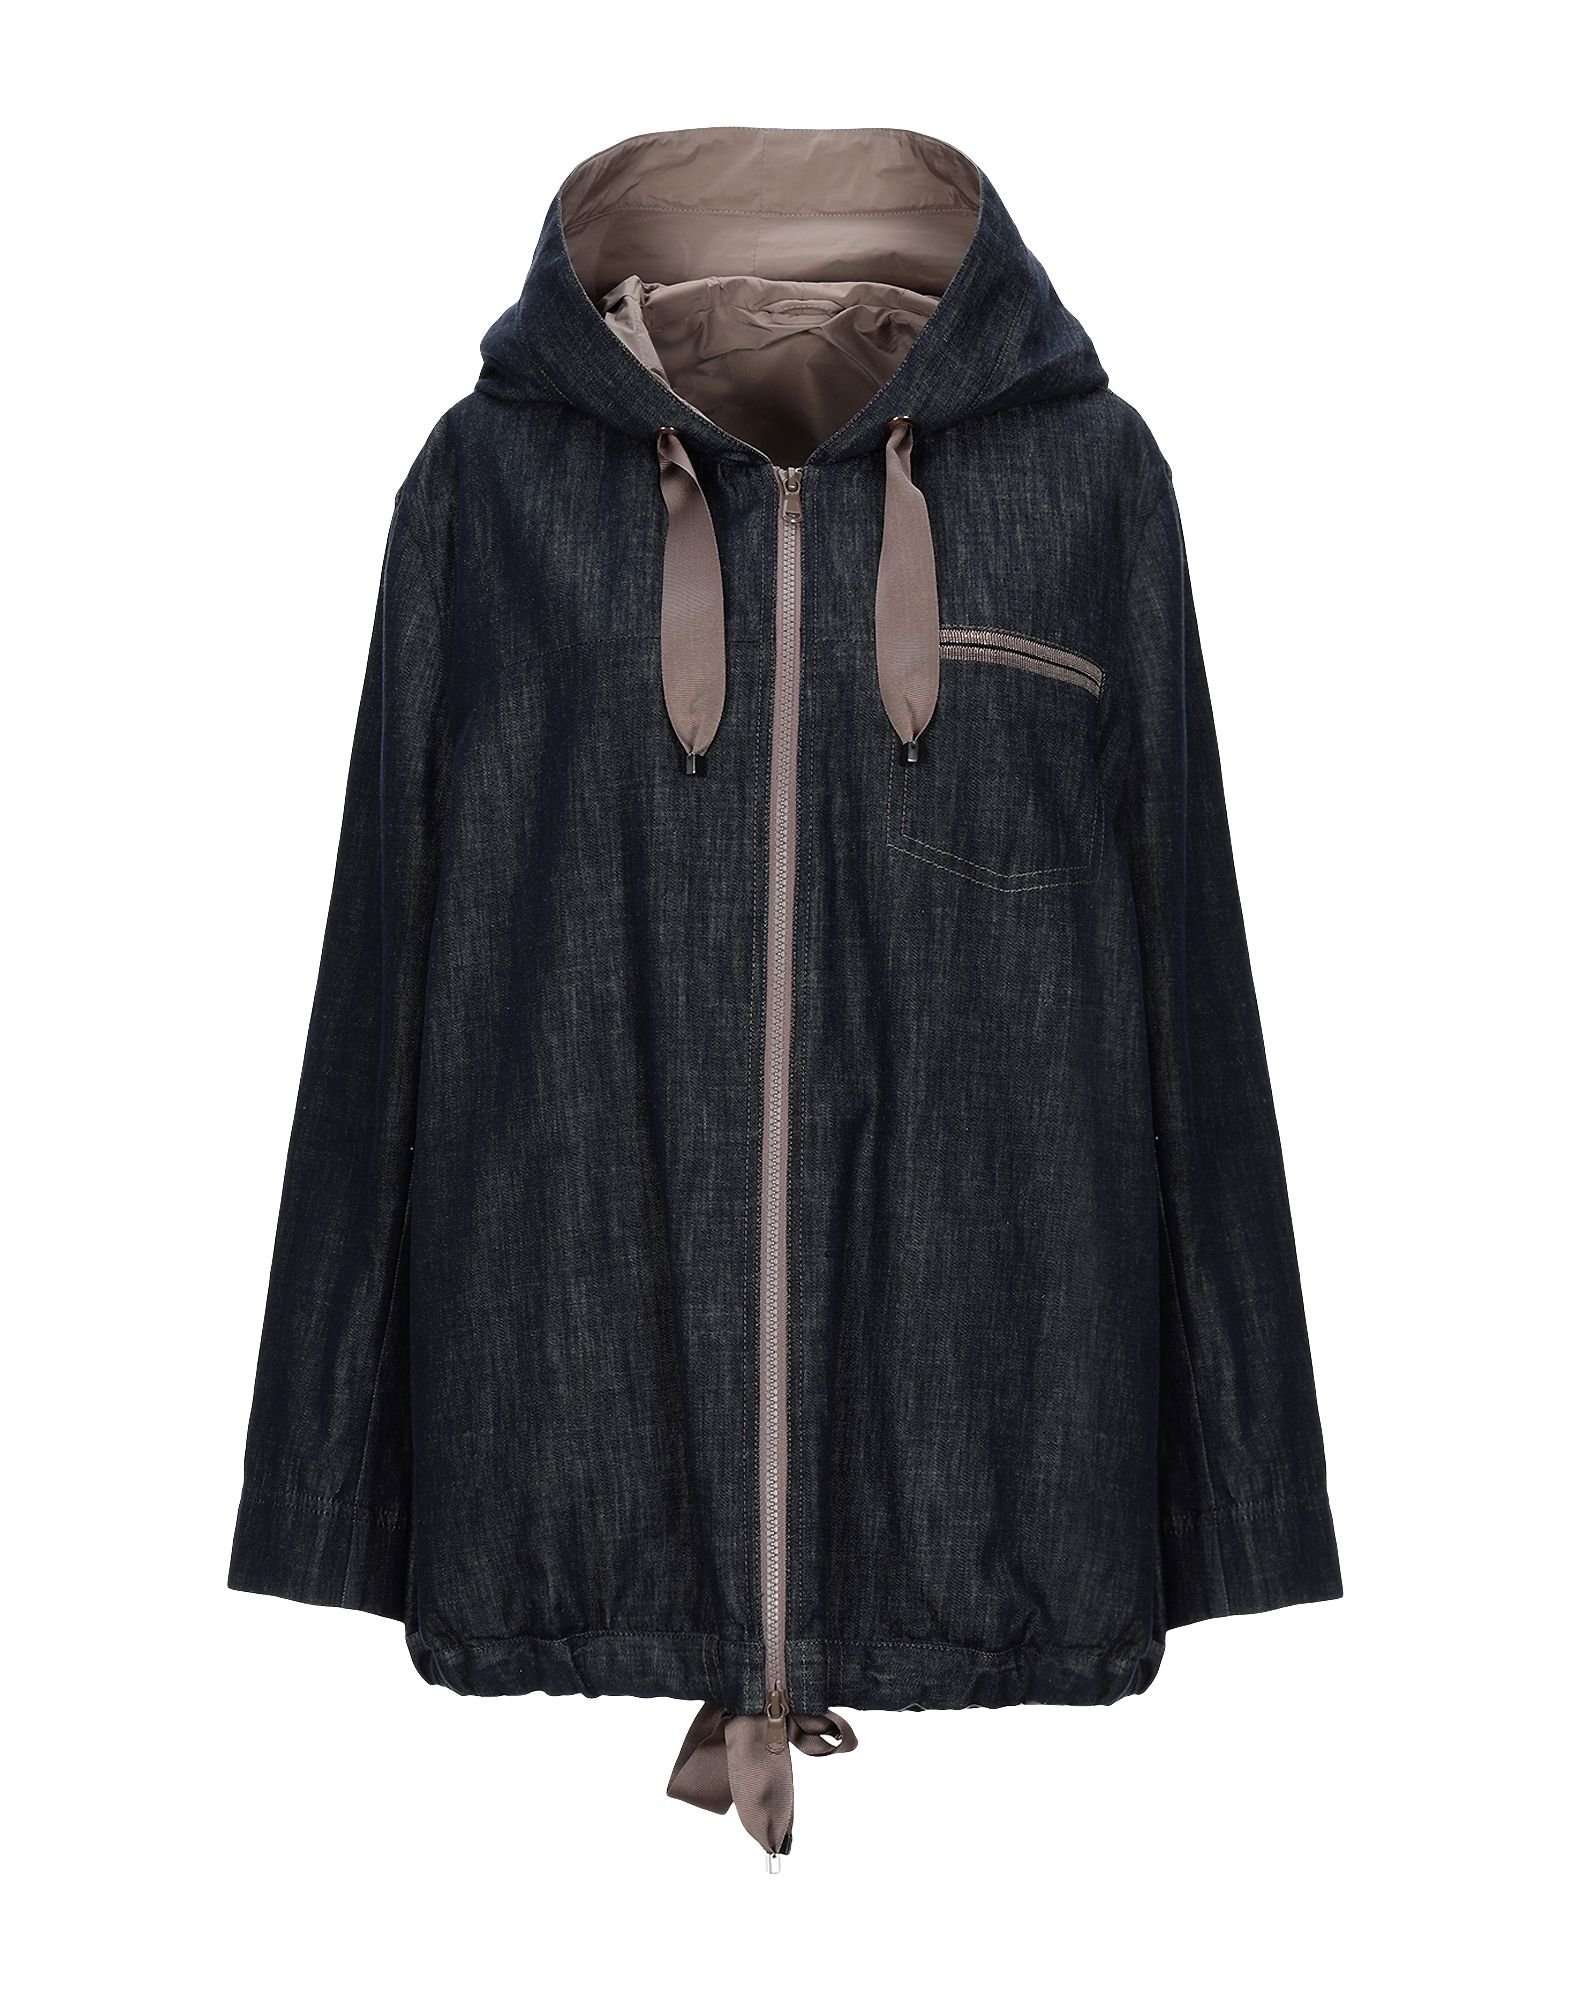 BRUNELLO CUCINELLI Denim outerwear. denim, contrasting applications, solid color, dark wash, long sleeves, hooded collar, single-breasted, front closure, zip, multipockets, semi-lined. 100% Cotton